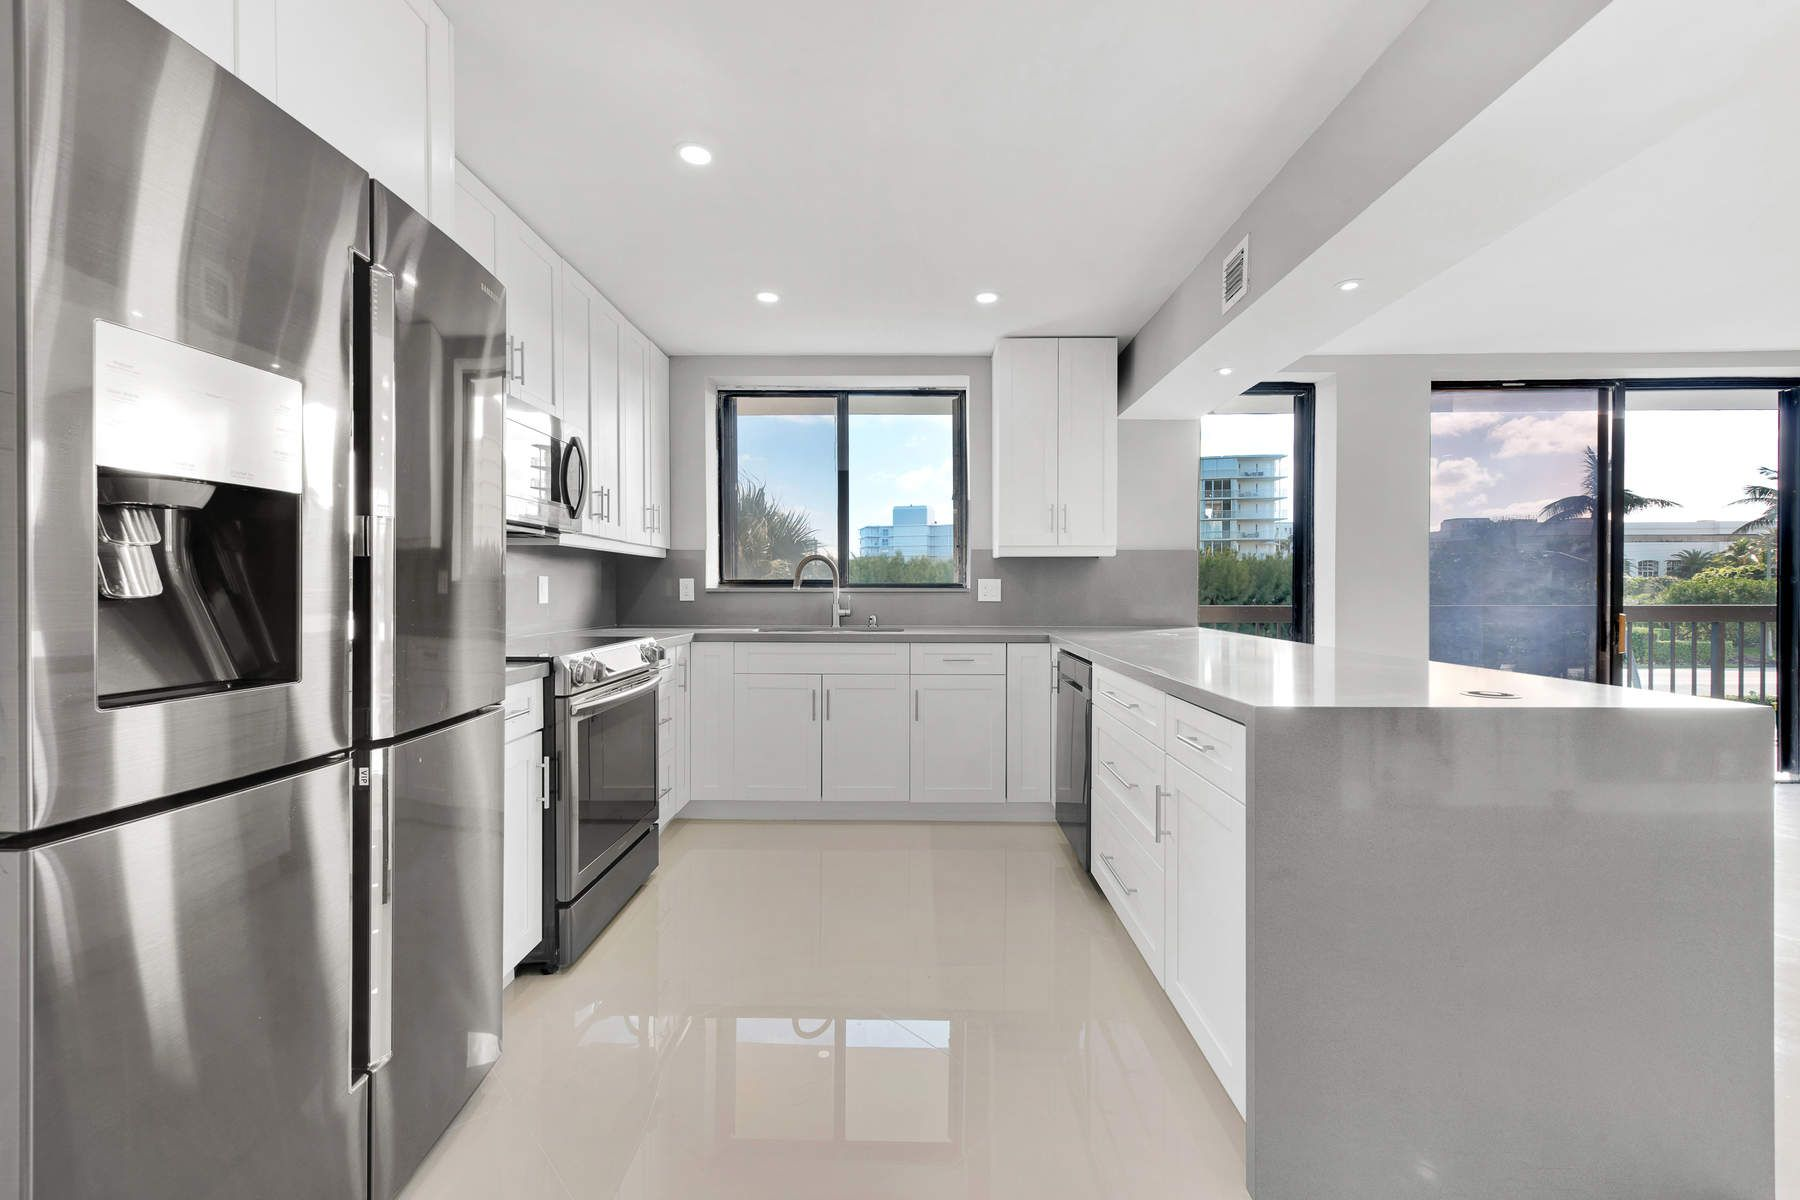 Condominium for Sale at Most Desirable Intracoastal Building 2778 S Ocean Blvd 204S, Palm Beach, Florida, 33480 United States